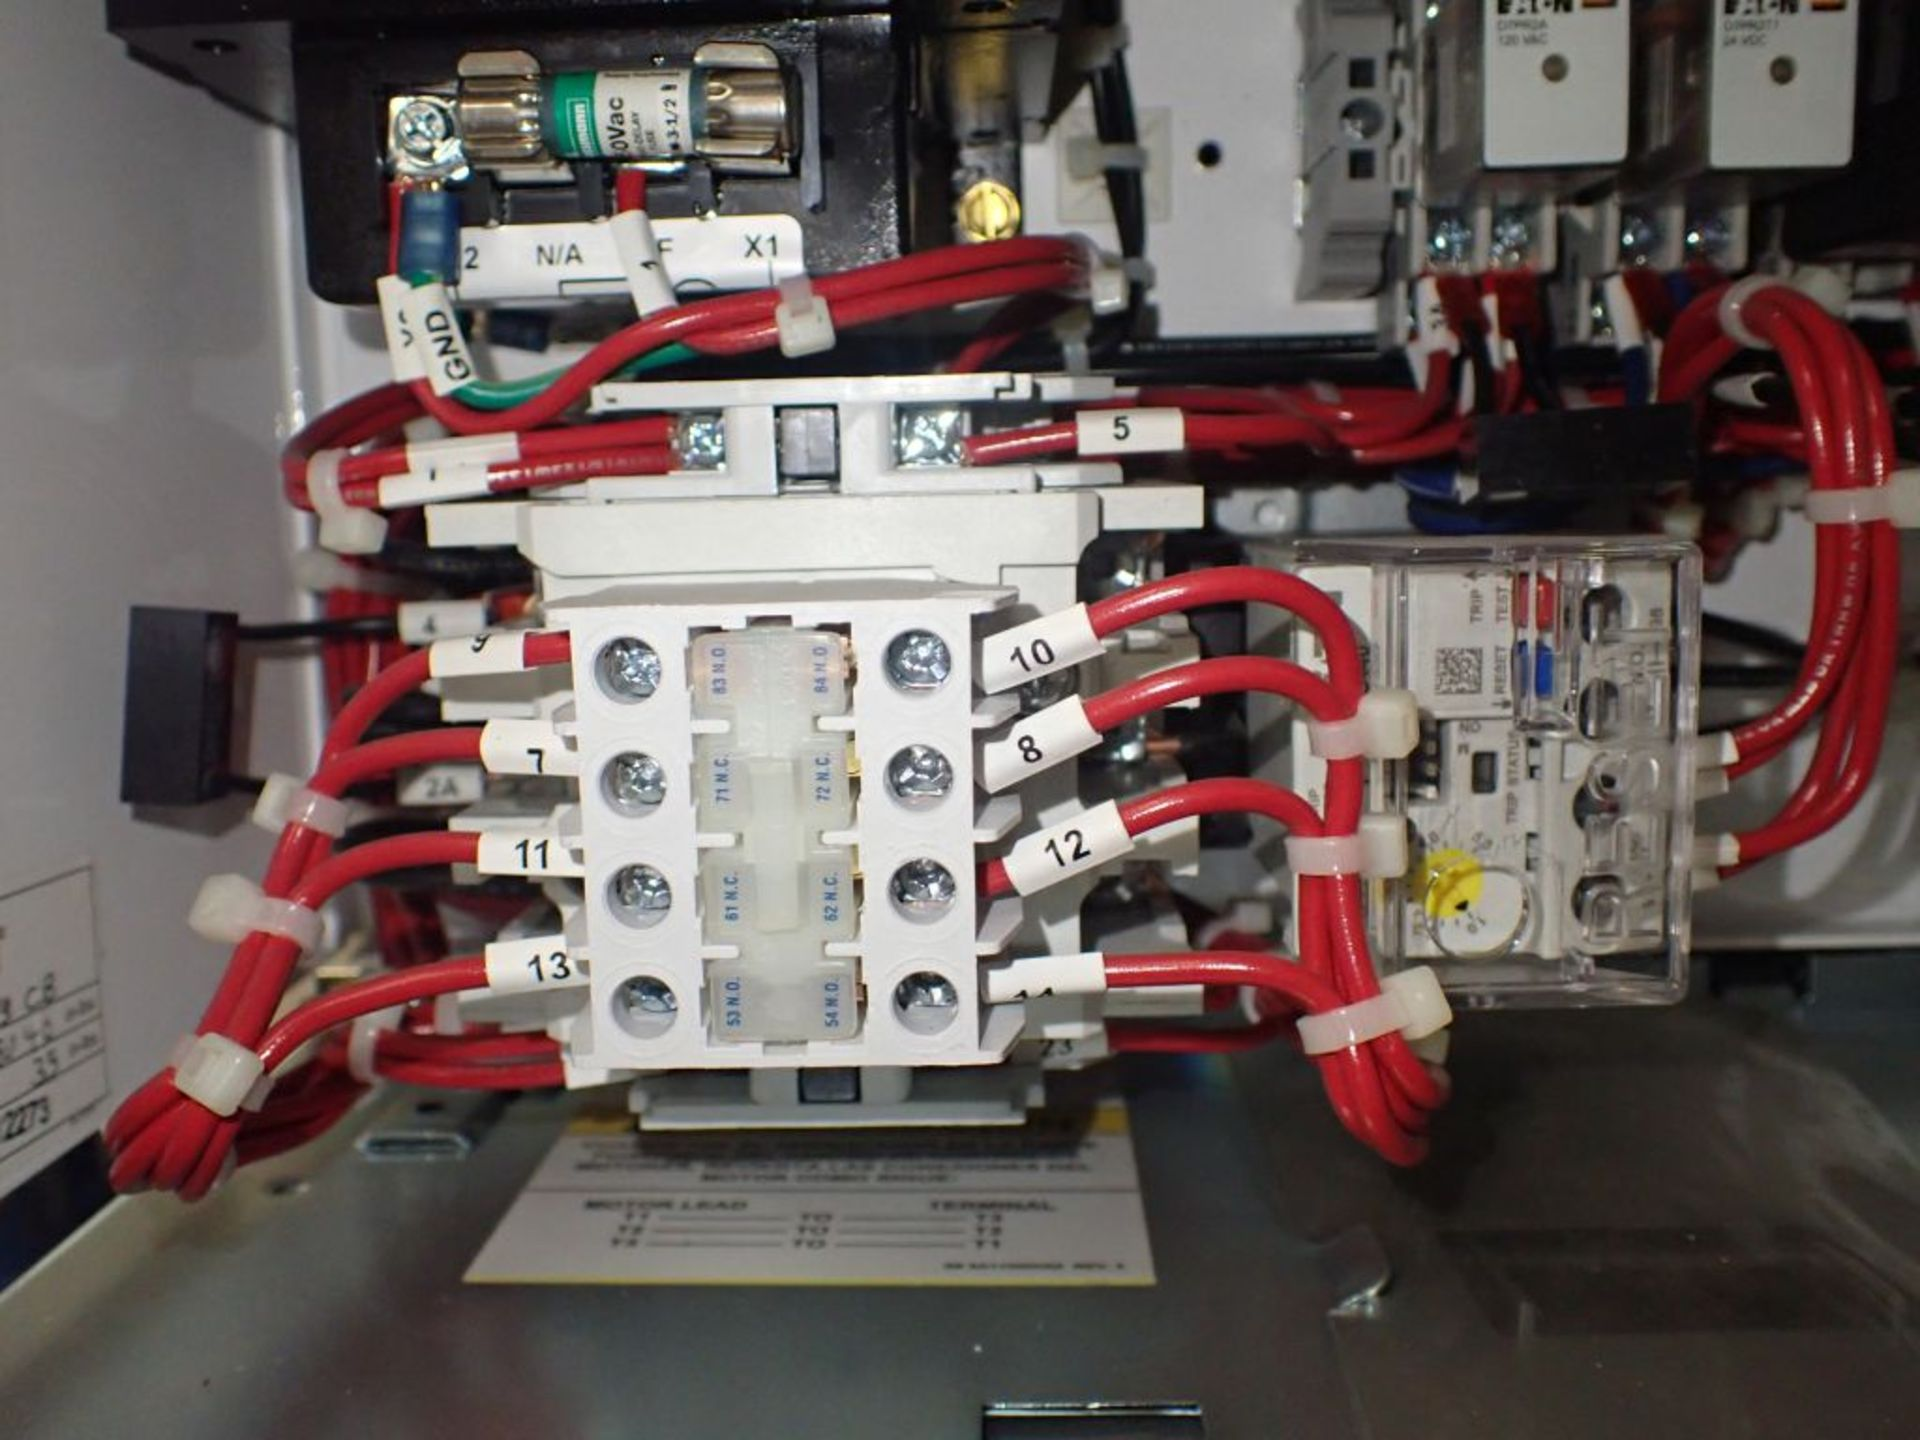 Eaton Freedom 2100 Series Motor Control Center | (2) F206-7A-10HP; (3) F206-15A-10HP; (1) FDRB-100A; - Image 46 of 87